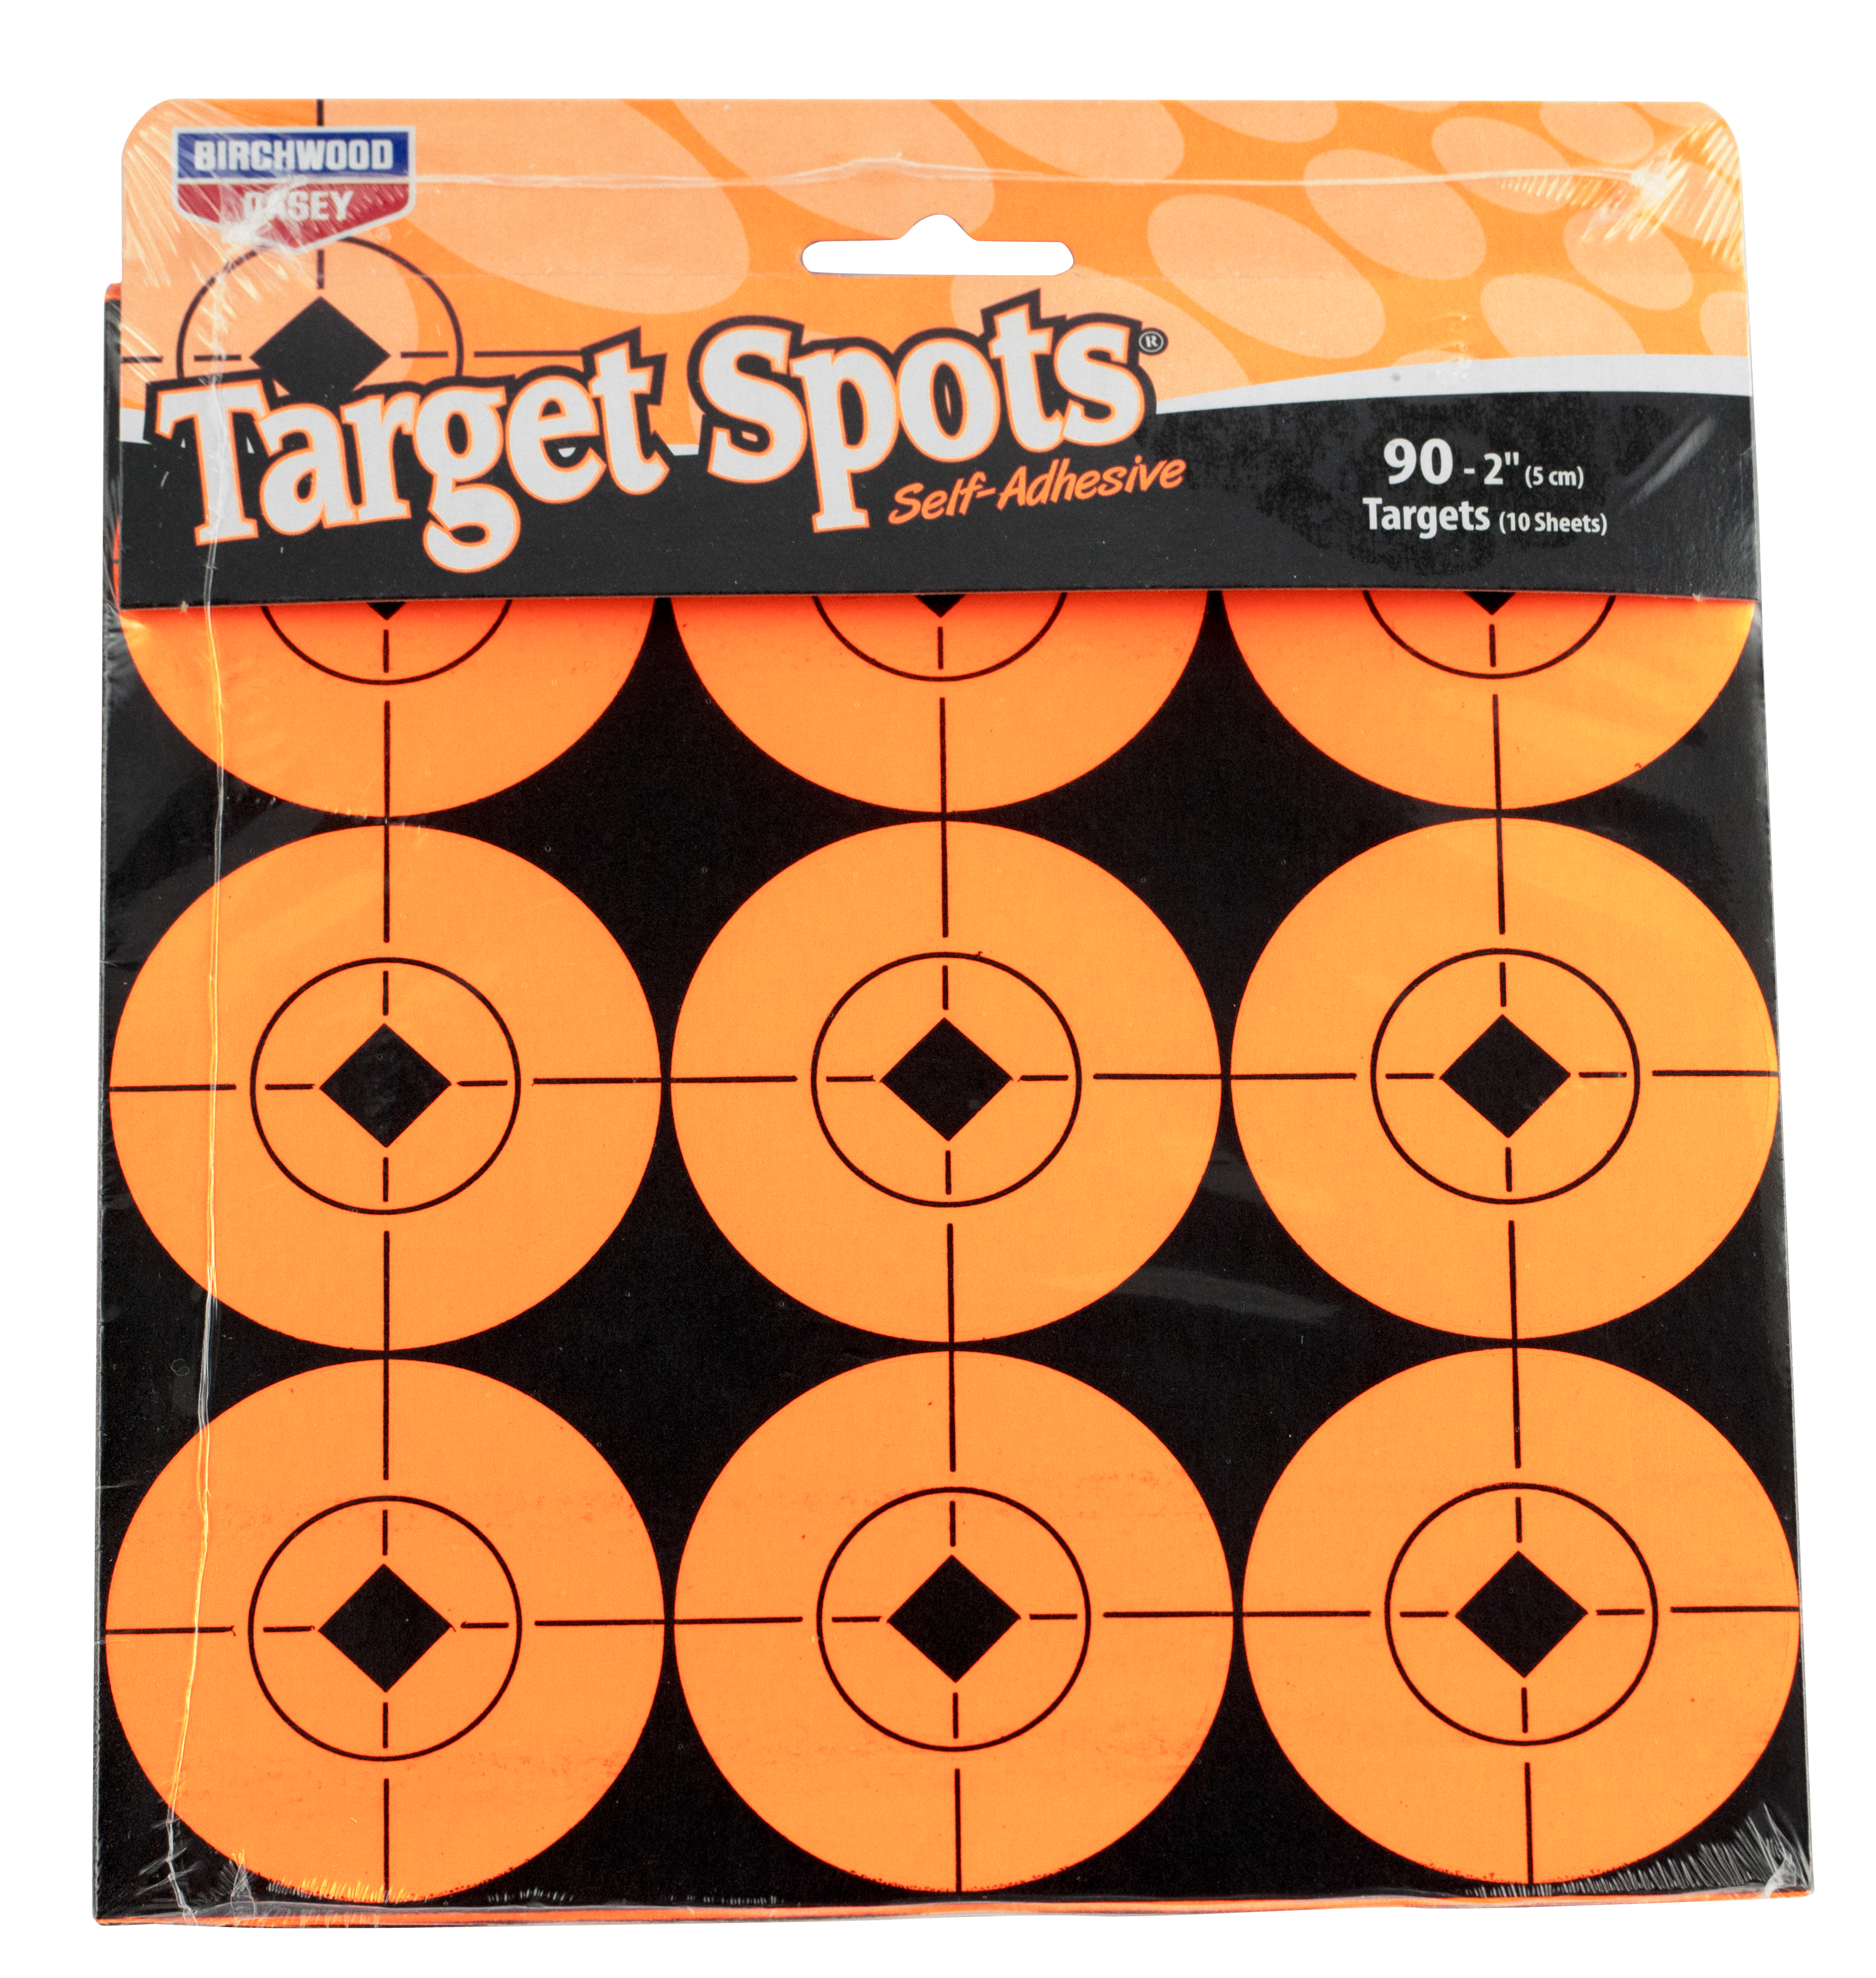 Birchwood Casey 33902 Target Spots Self-Sticking 36-2